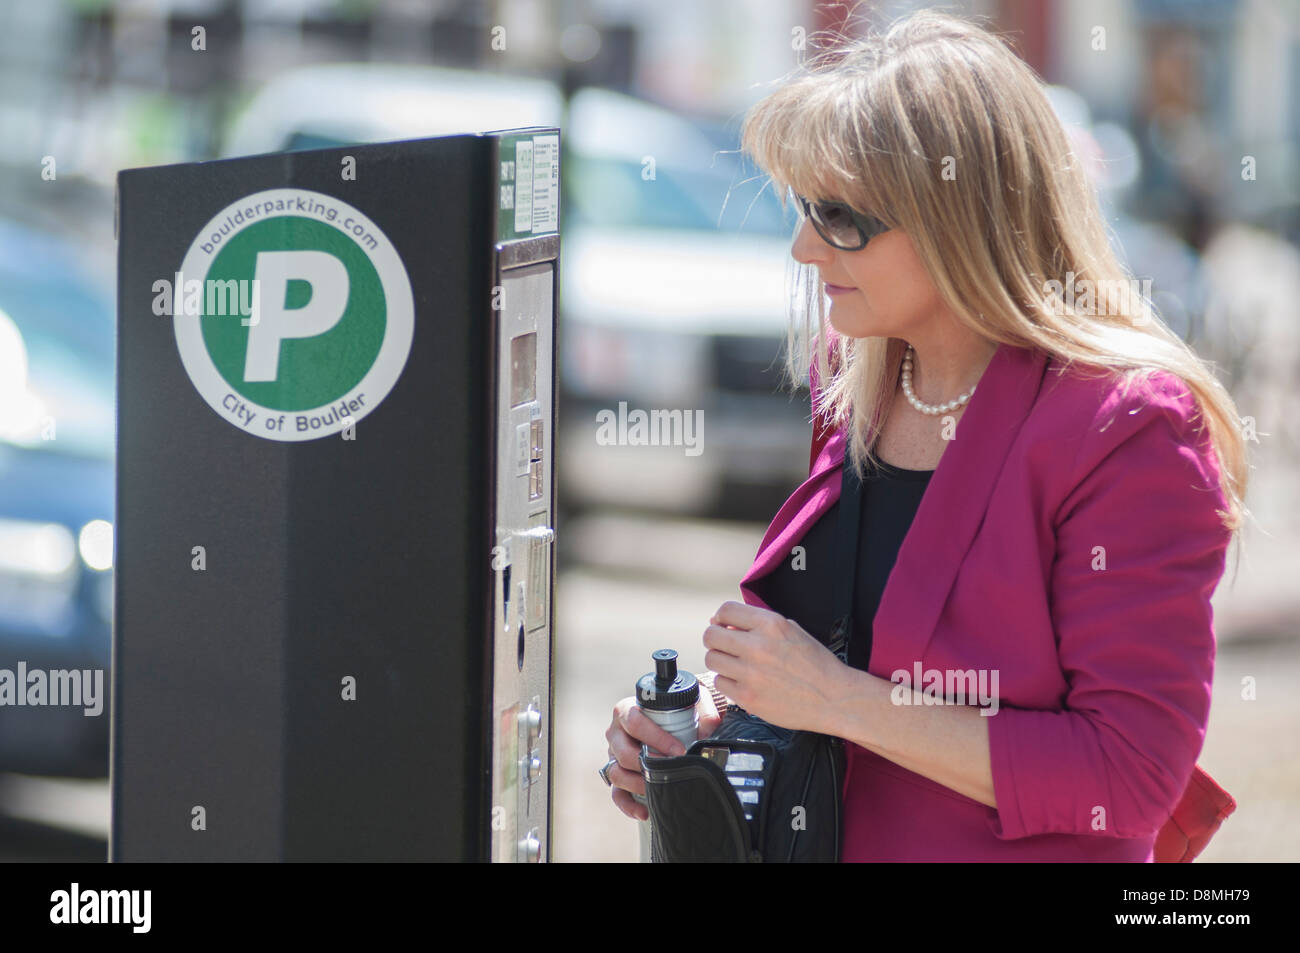 Woman at parking meter. - Stock Image